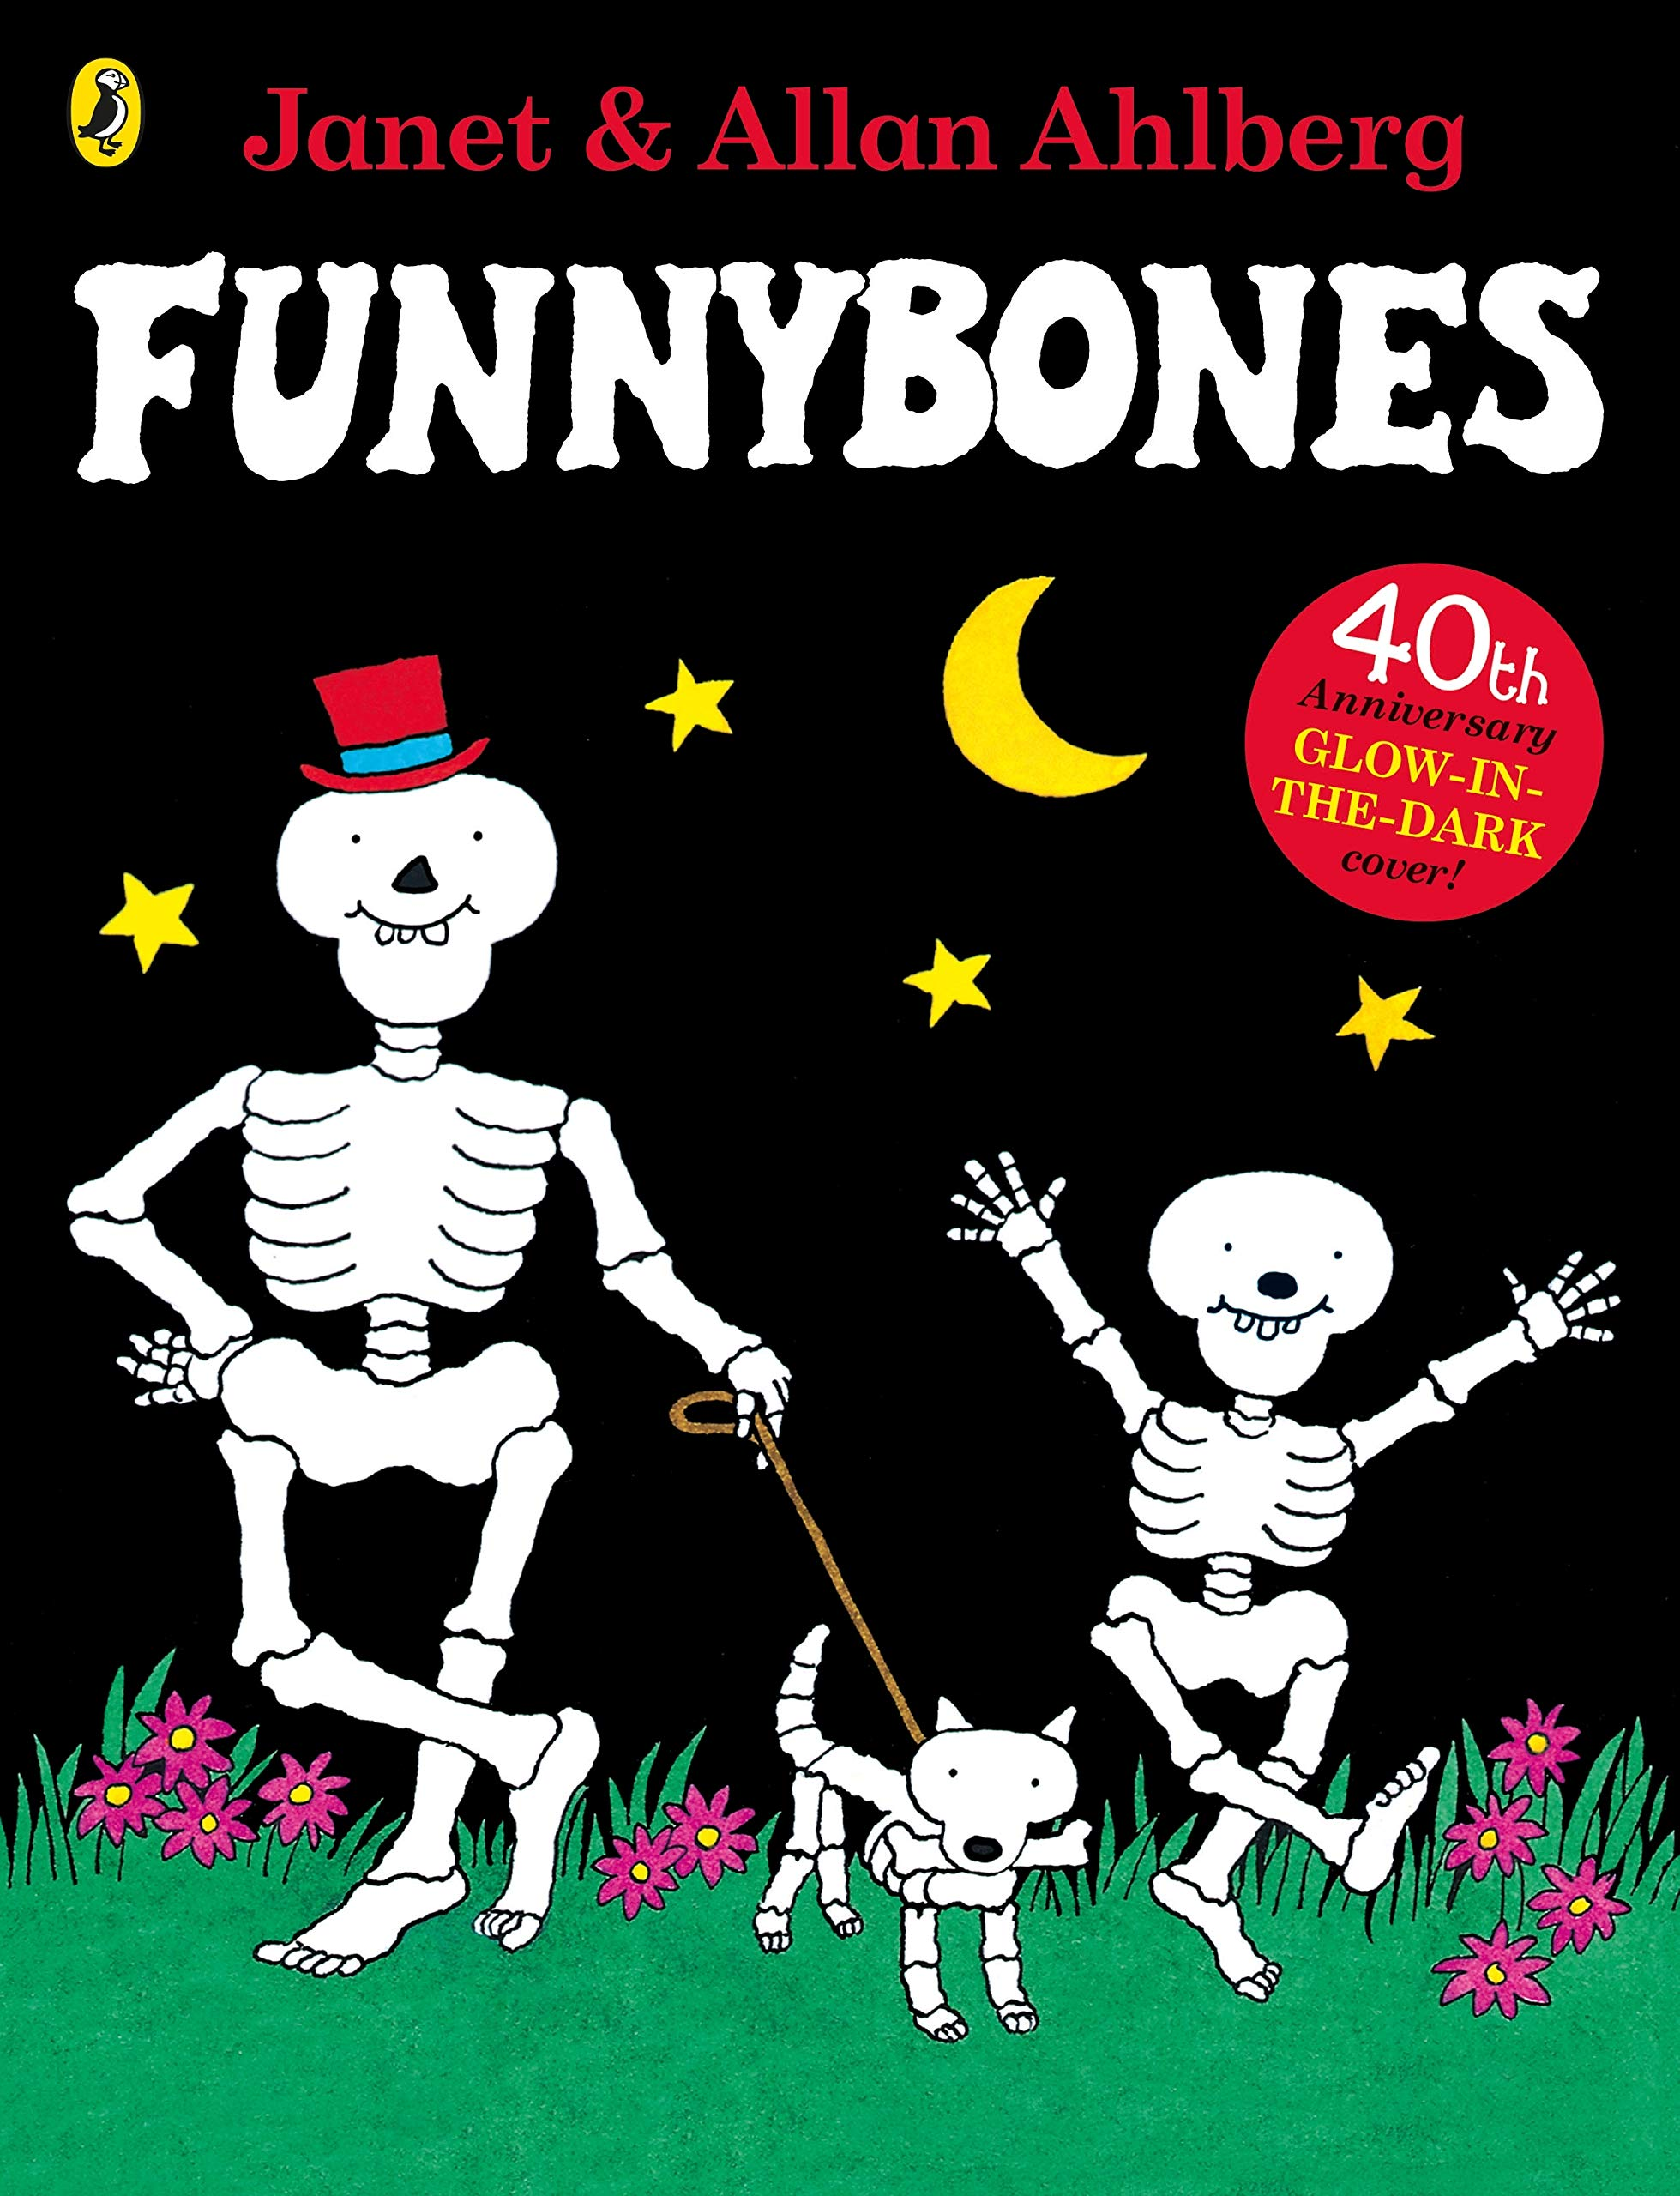 Funnybones: Amazon.co.uk: Ahlberg, Allan, Ahlberg, Janet, Ahlberg ...